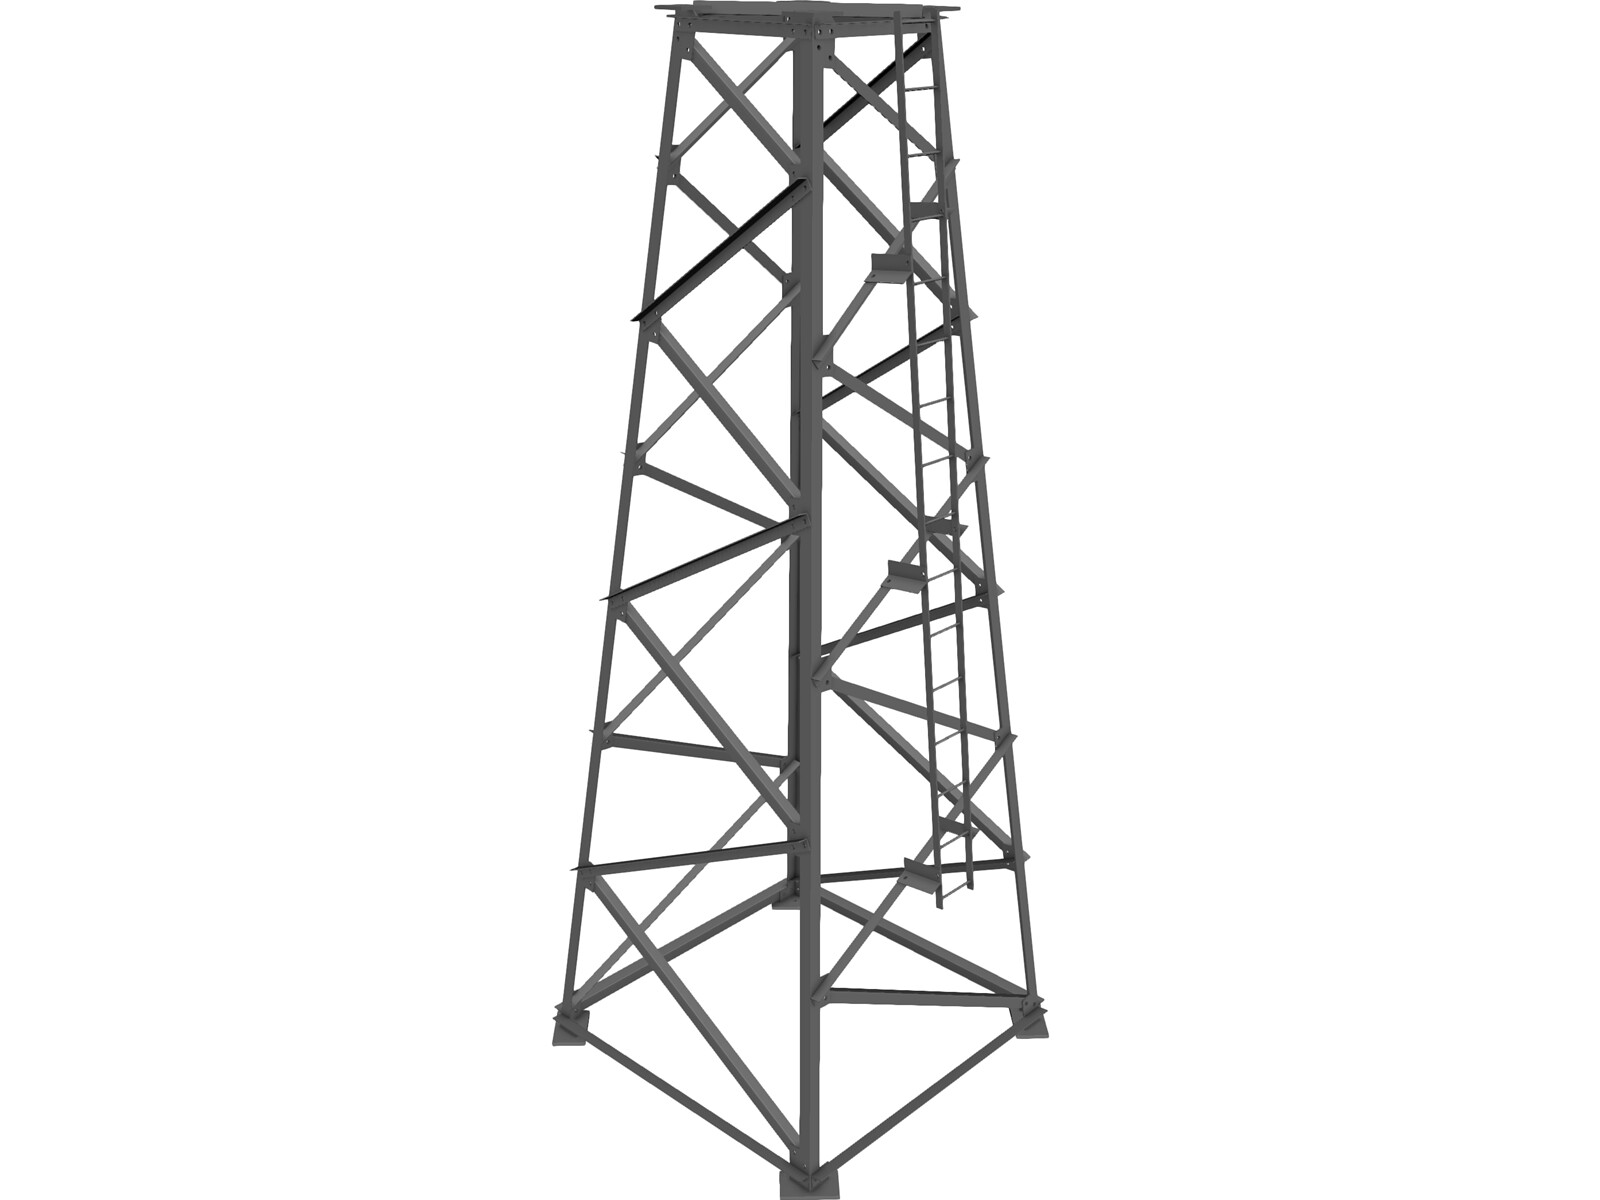 Tower Structure 3d Cad Model